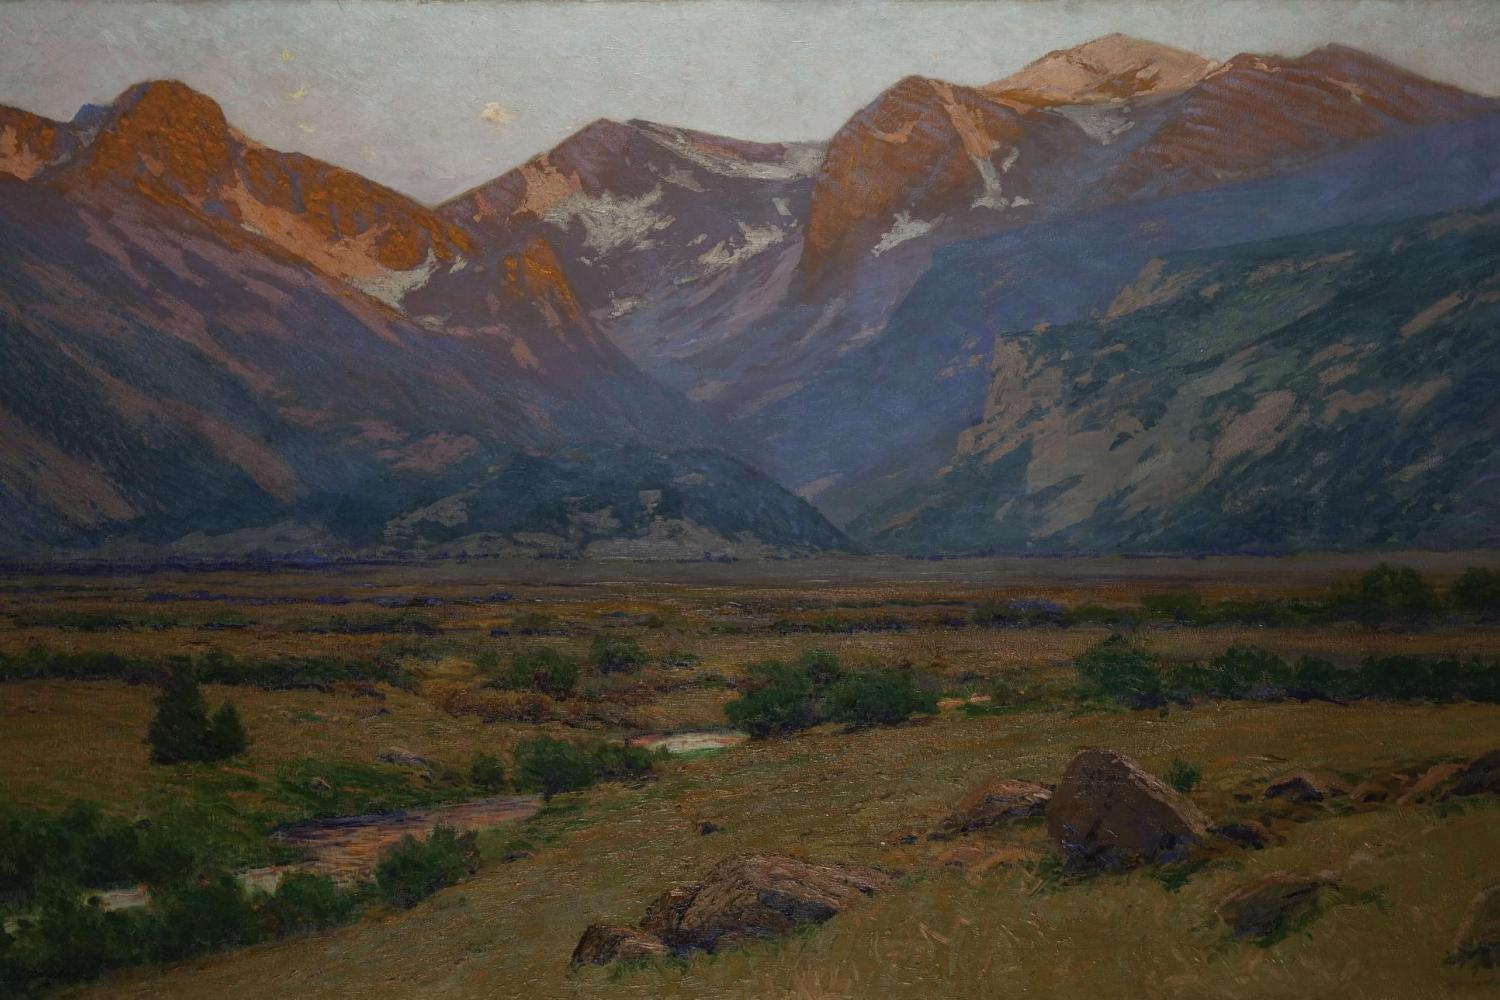 Painting of a mountain valley